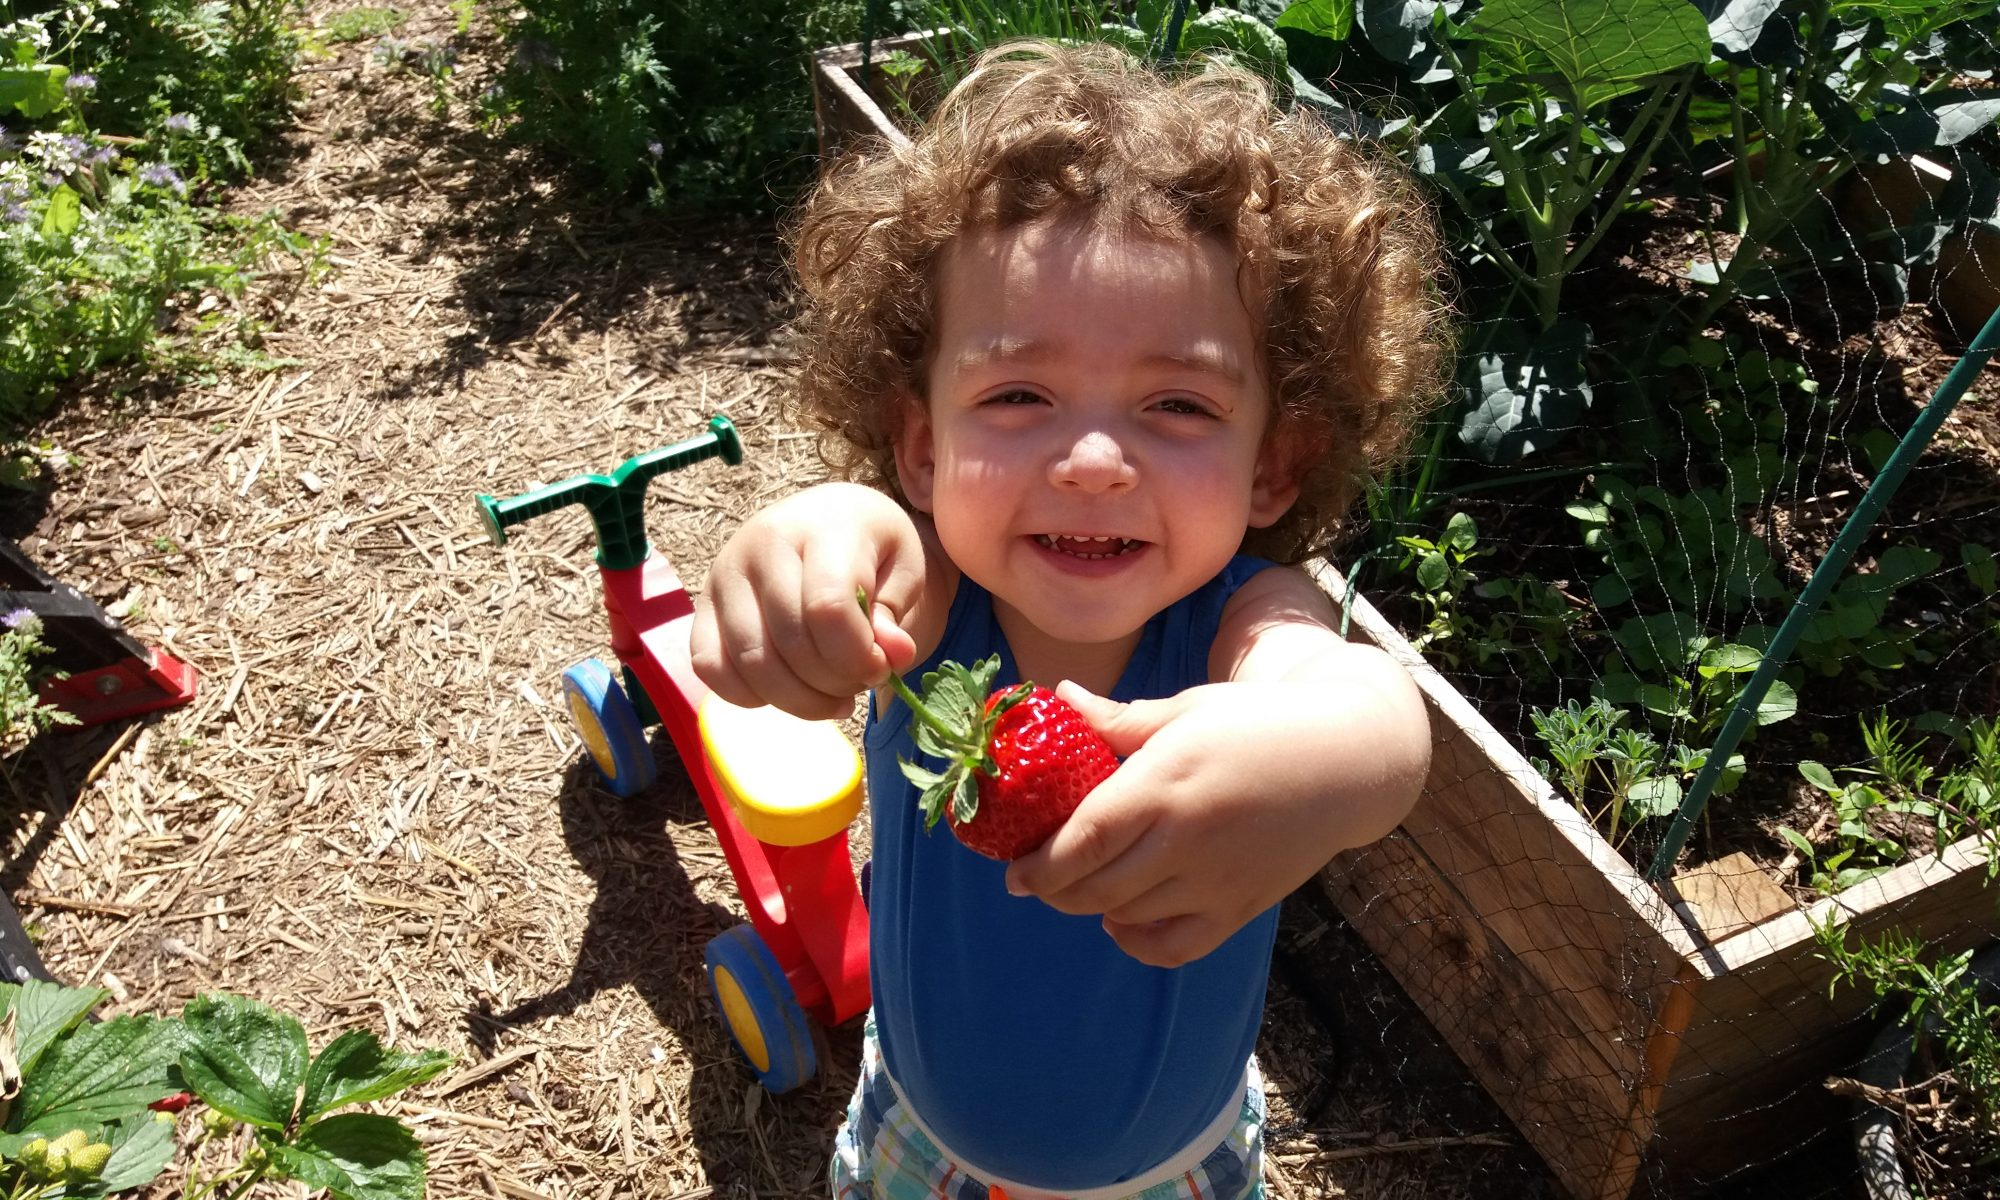 Strawberries, cute, permaculture, gardening, toddler, landscaping, bio, eco, sustainability, sostenible, sustentable, ecologico, ecologia, zerowaste